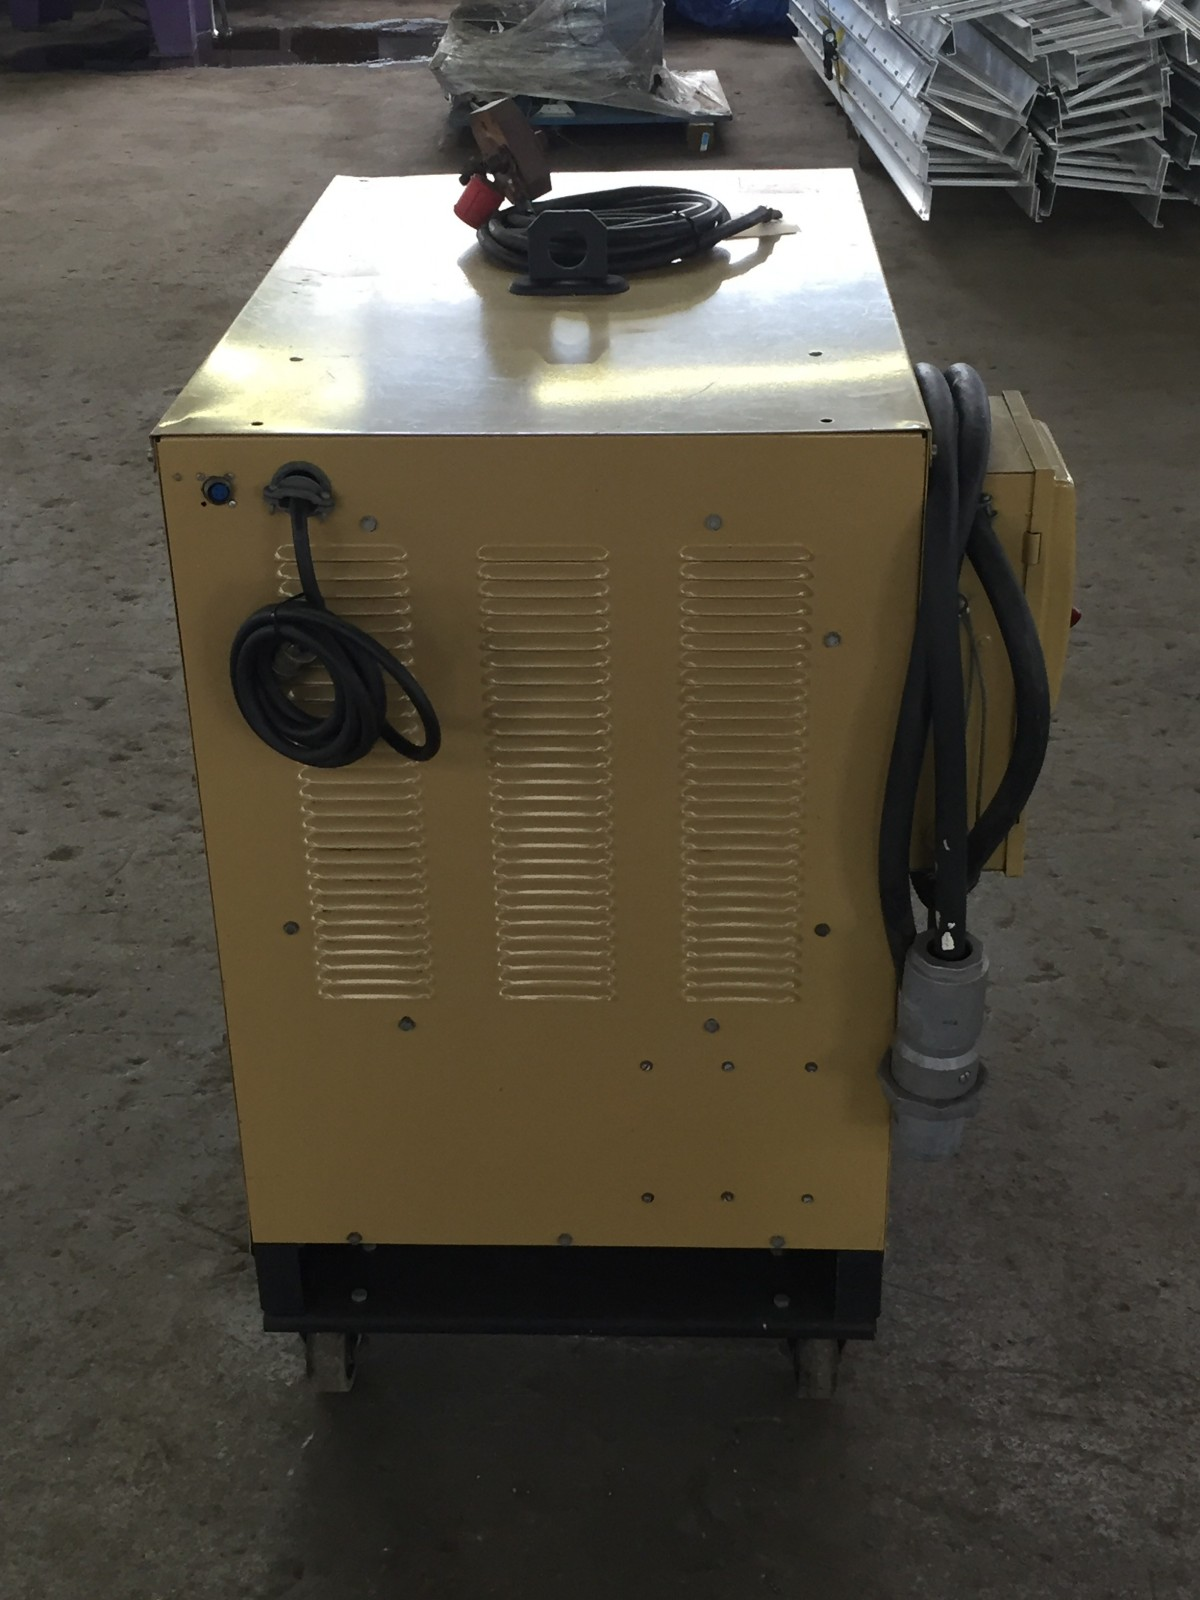 HOBART CYBER-TIG 150 DCS welder model CT150DC-5